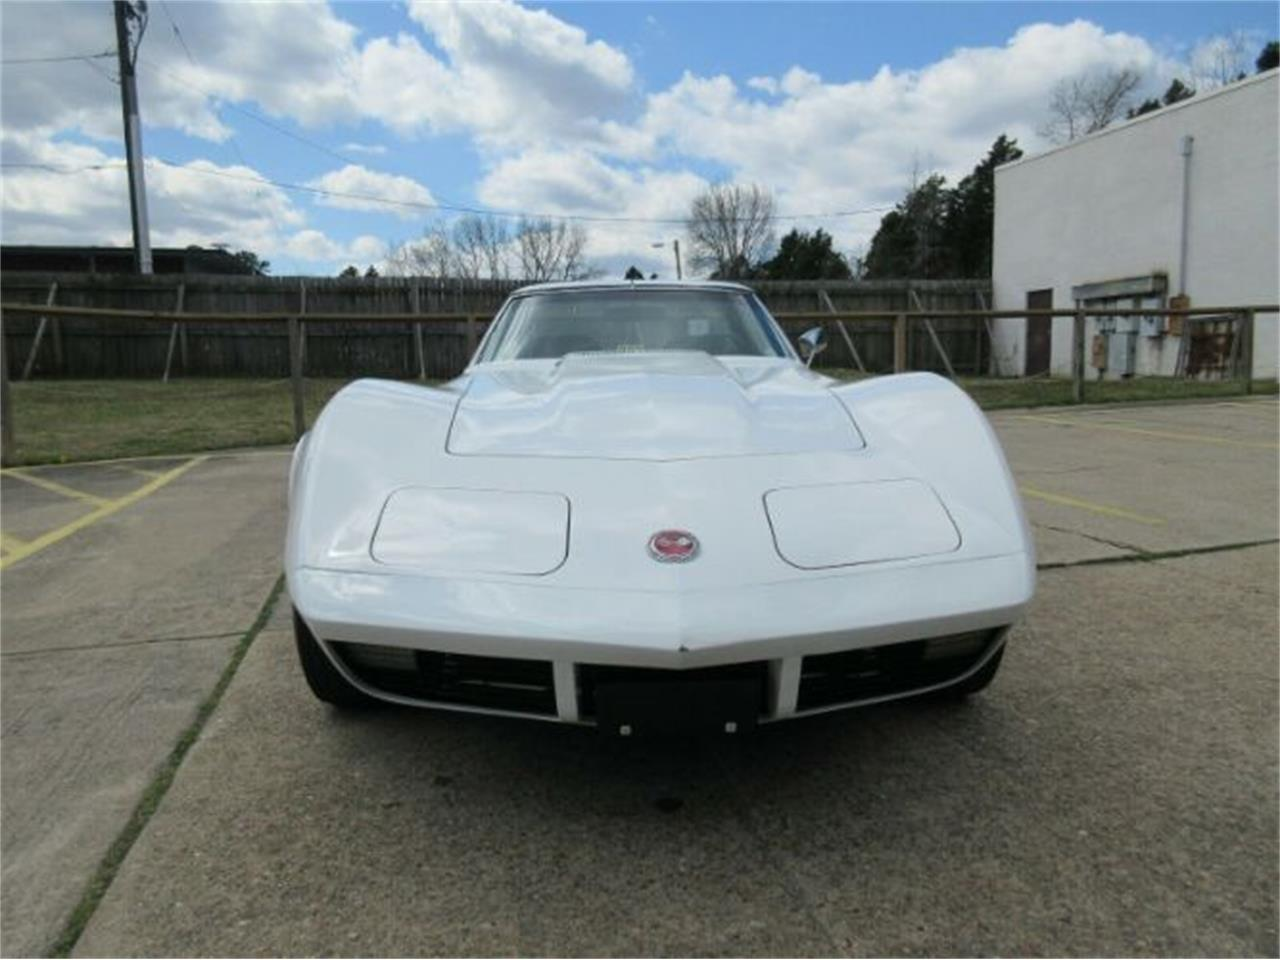 Large Picture of 1974 Chevrolet Corvette located in Cadillac Michigan - $35,495.00 Offered by Classic Car Deals - Q0MN